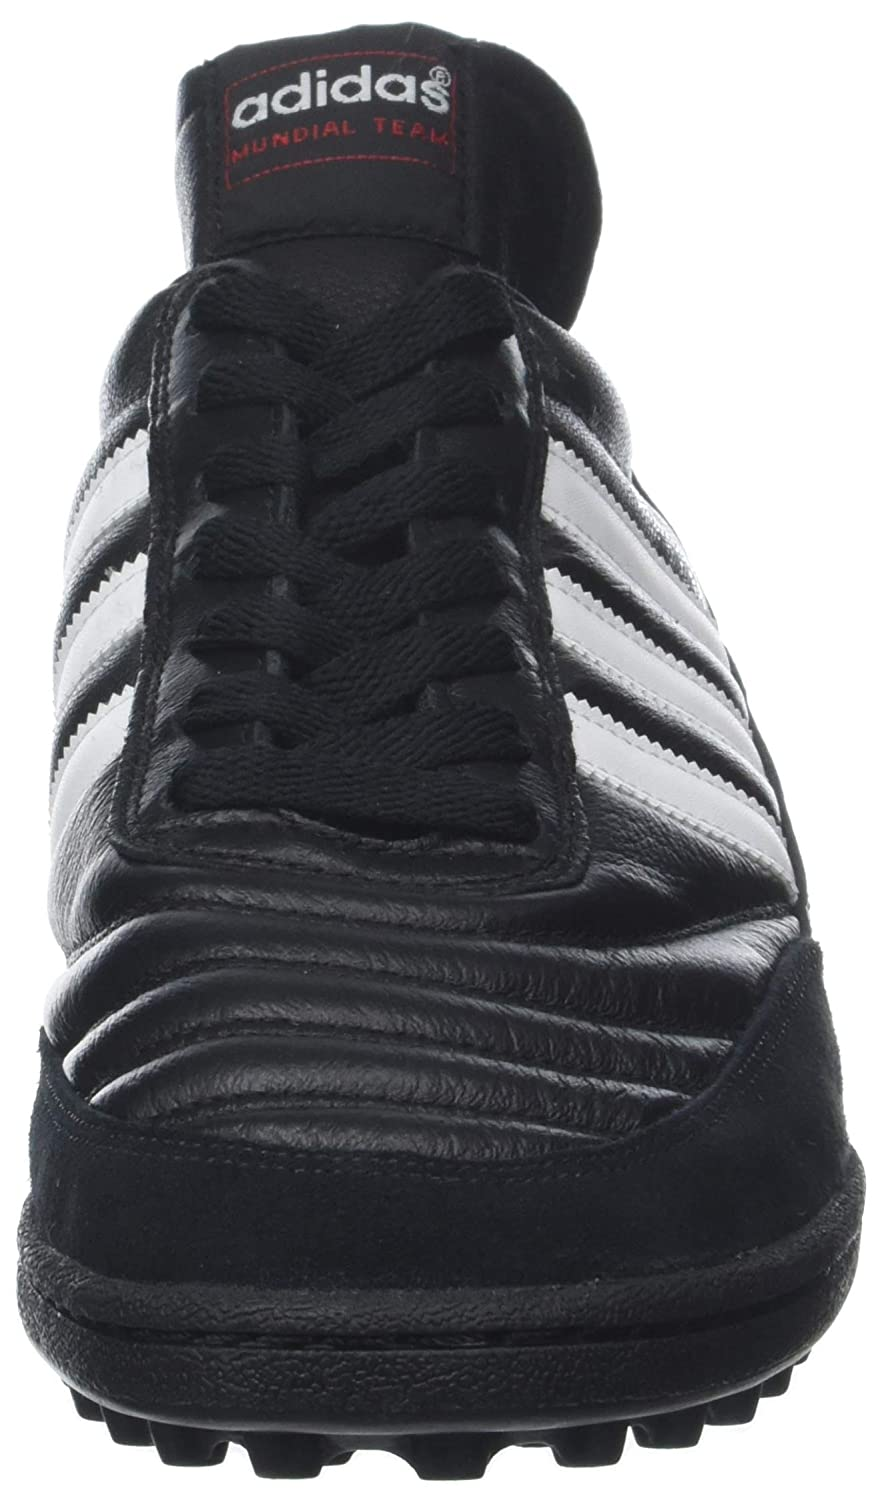 best sneakers df3a6 aeba6 Amazon.com   adidas Performance Mundial Team Turf Soccer Cleat   Soccer